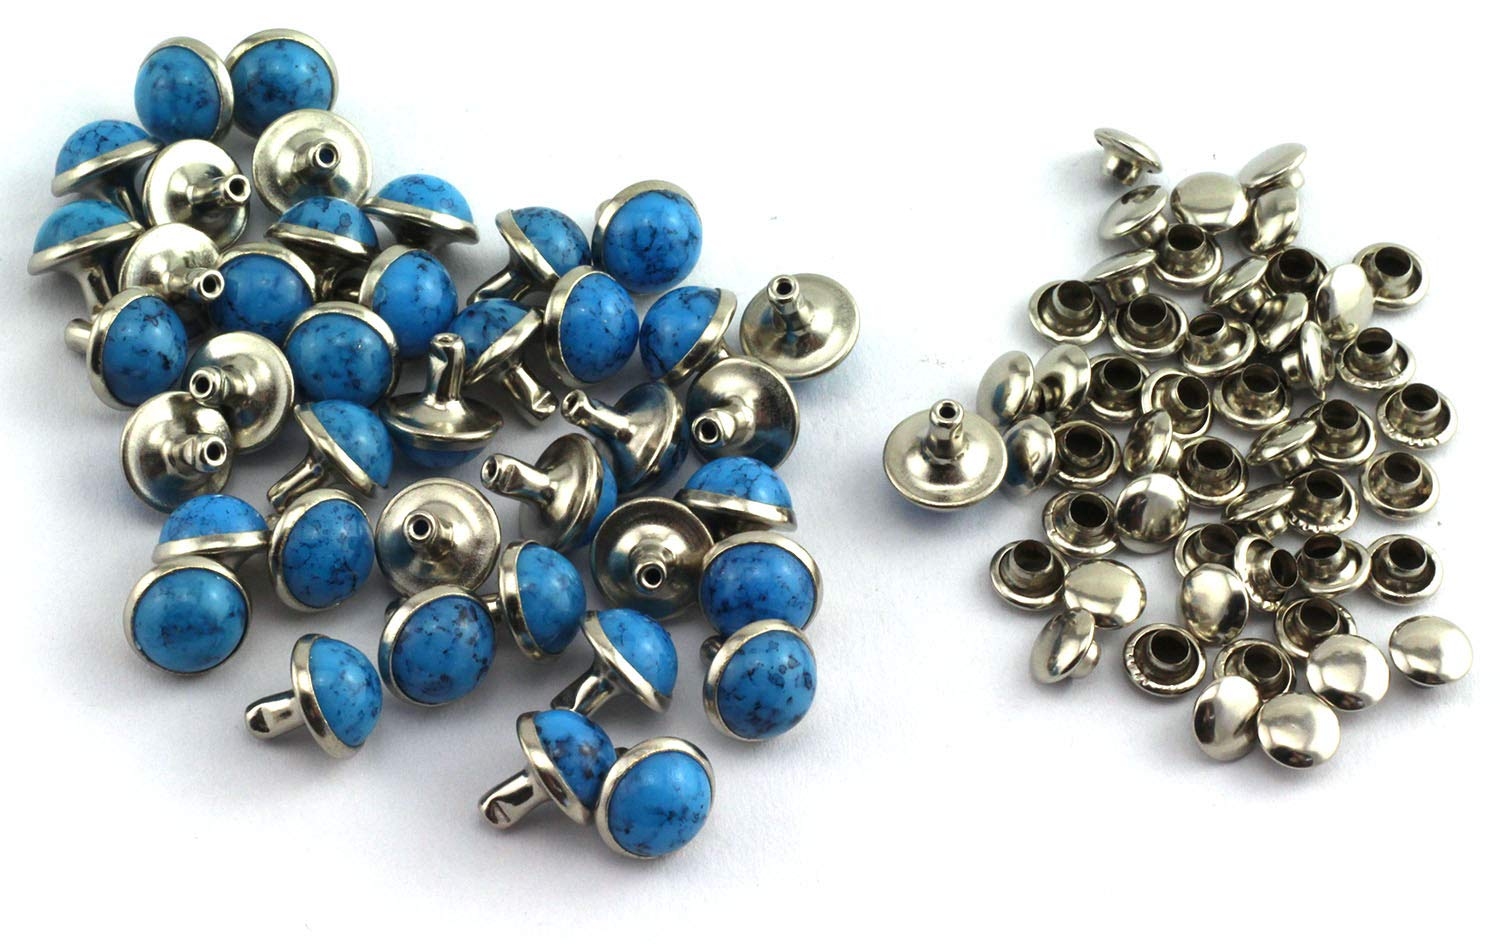 RuiLing 100pcs 12mm Blue Turquoise Rapid Rivet Stud National Style Round Head Leathercraft Decorations Accessory Handmade DIY Crafts for Jewelry Shoes Clothes Bags Garment